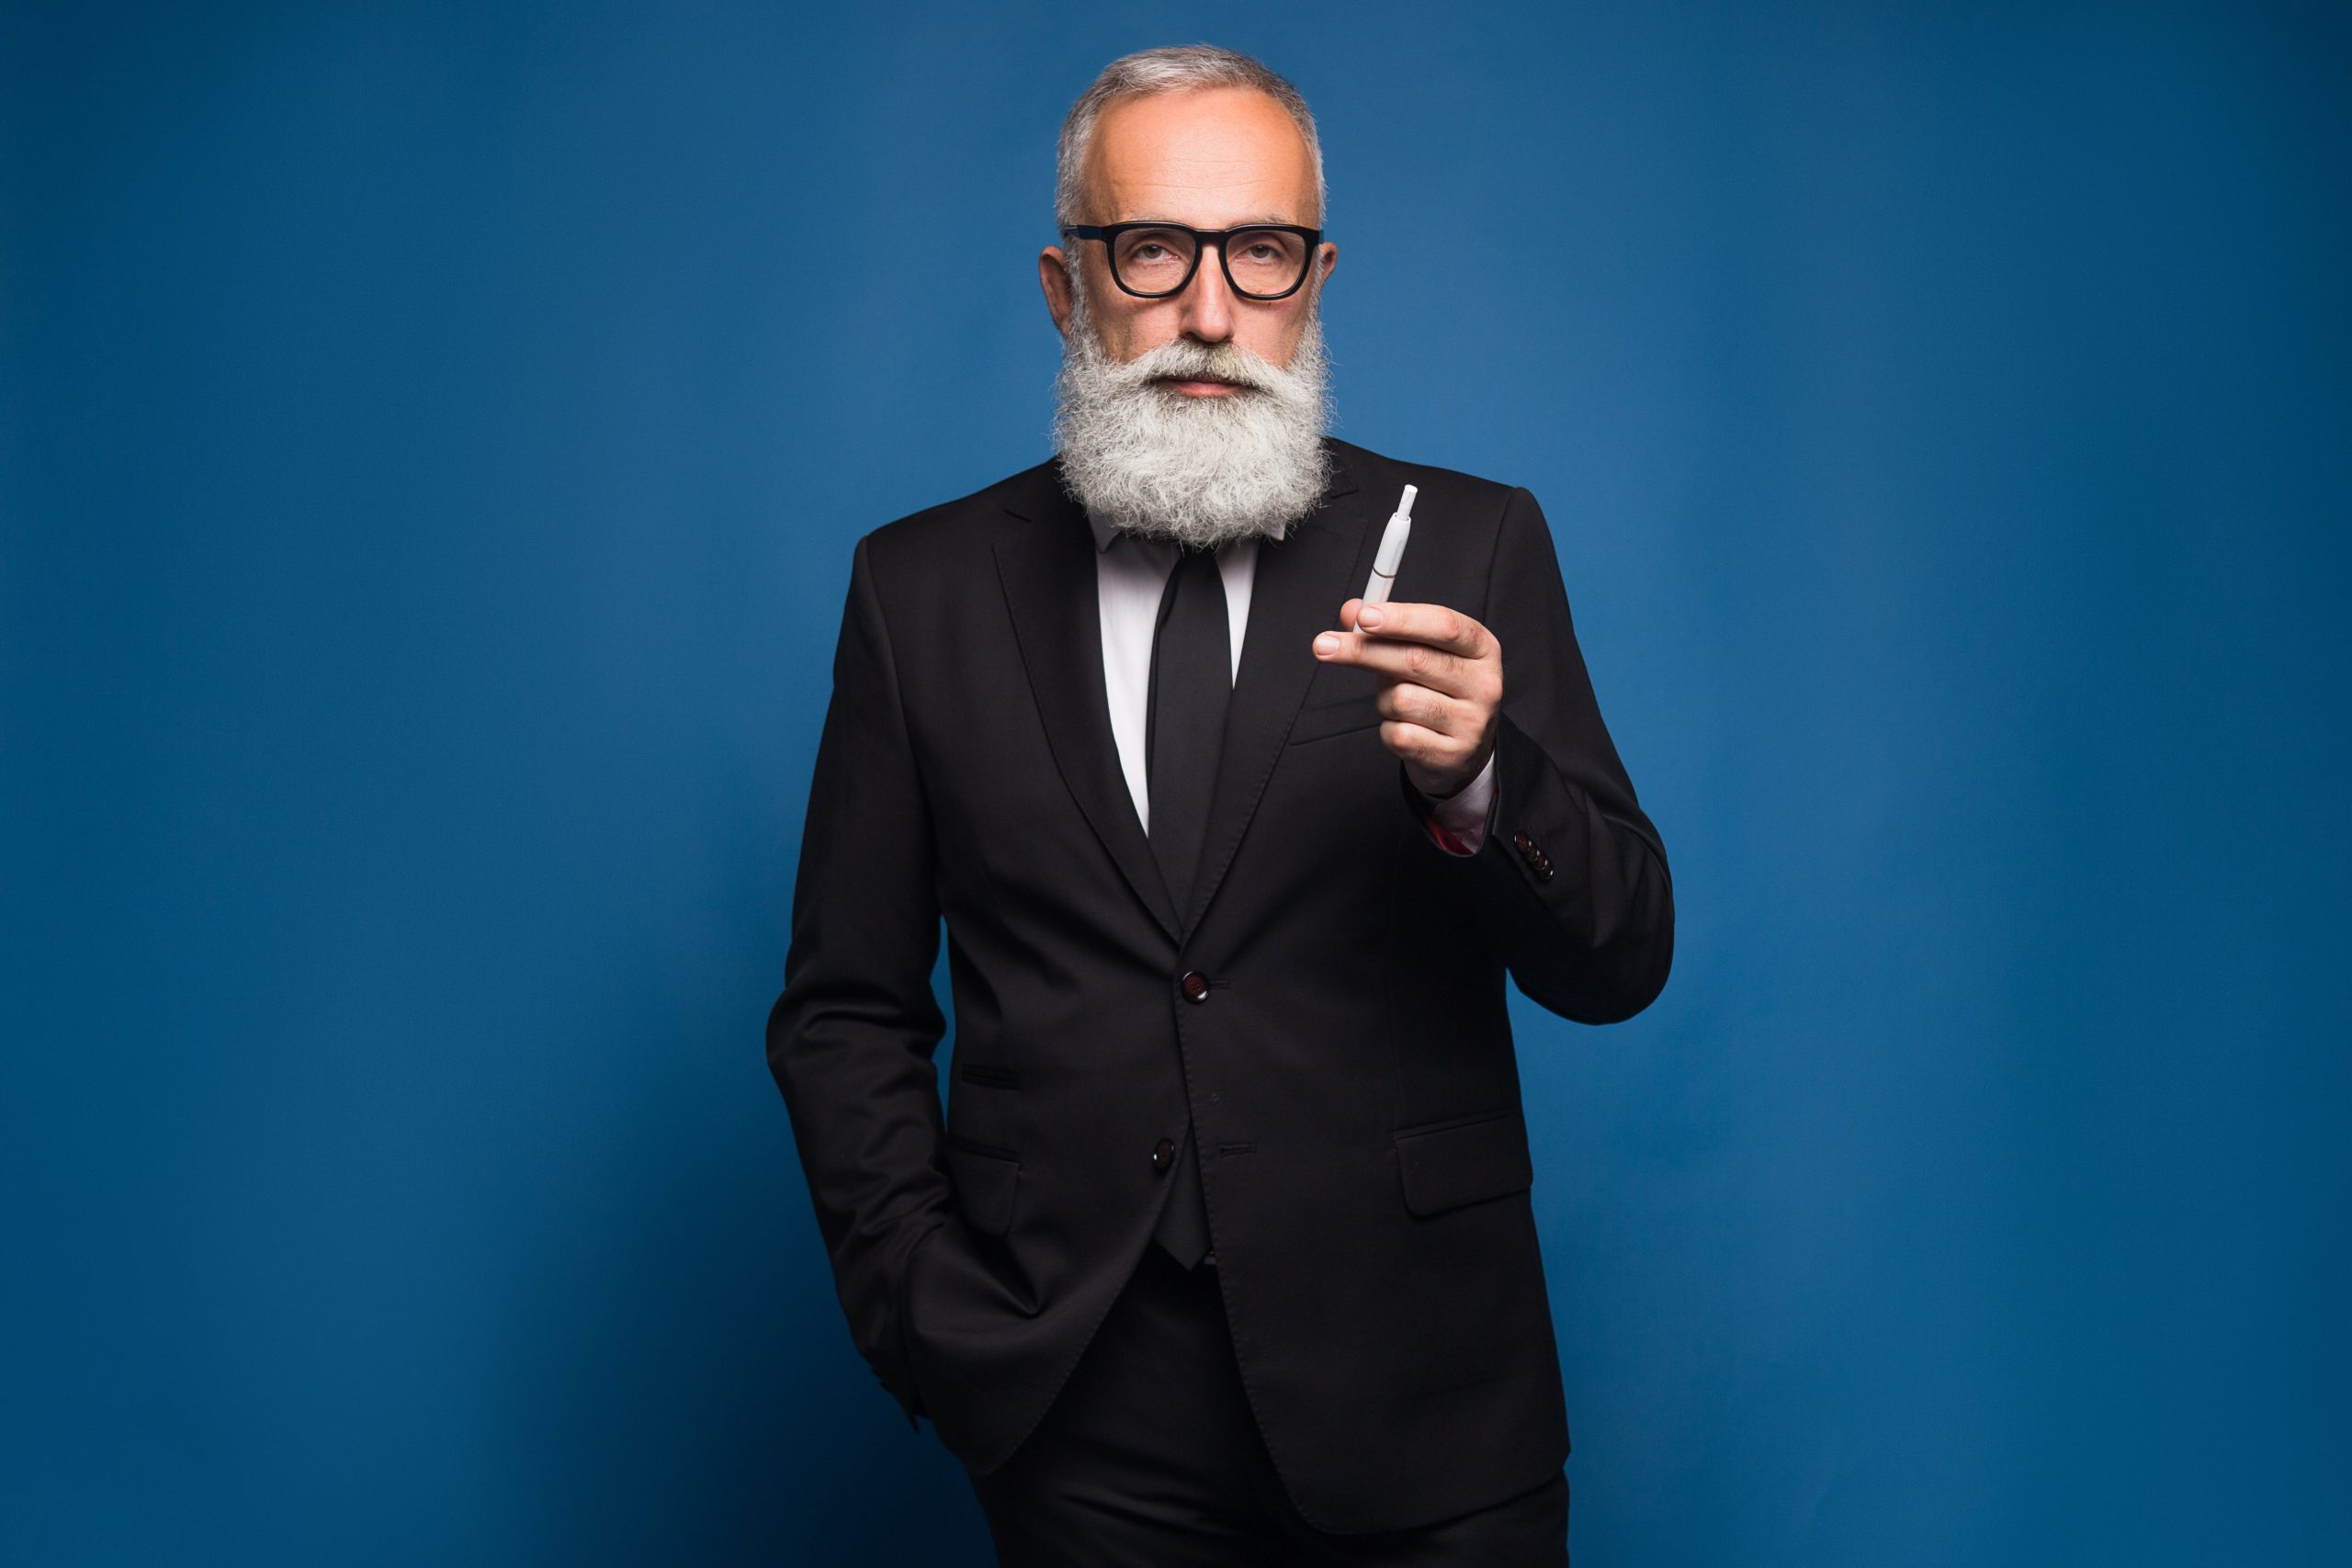 Bearded Business Man Smoking Electronic Cigarette In The Suit New Technology Of Healthy Smoking Of Electronic Vaping Cigarette